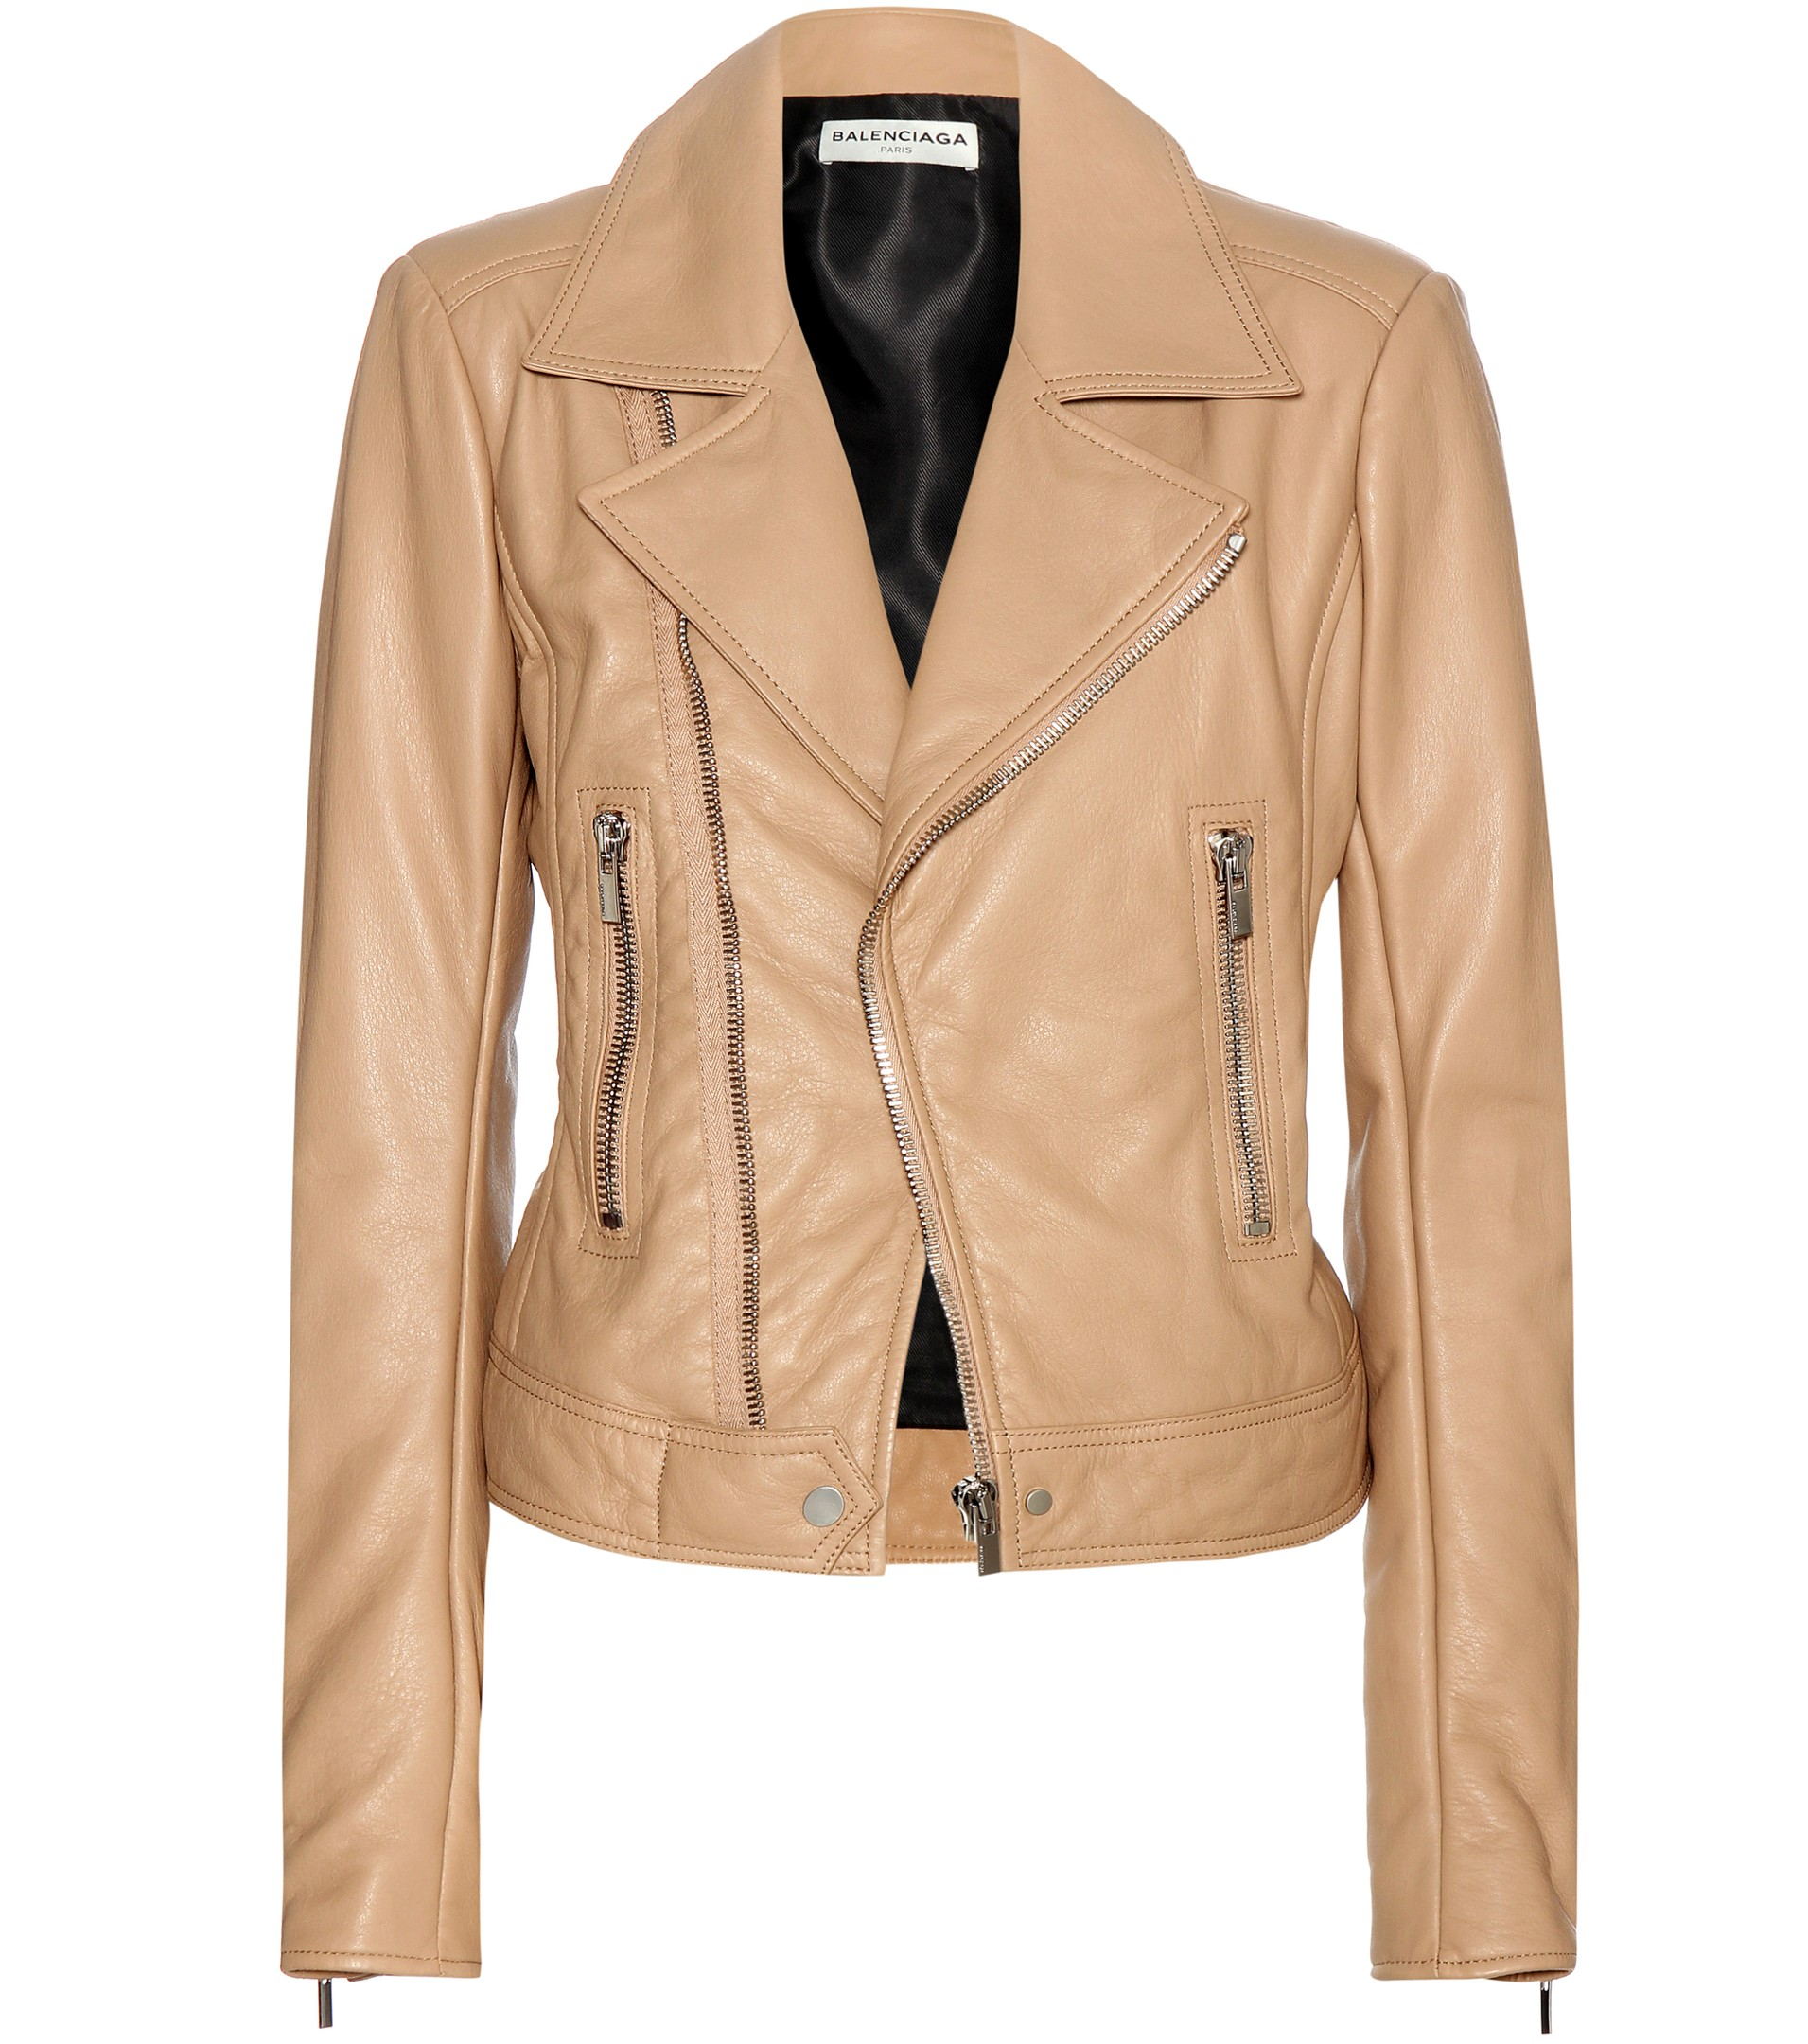 Balenciaga Leather Biker Jacket in Natural | Lyst